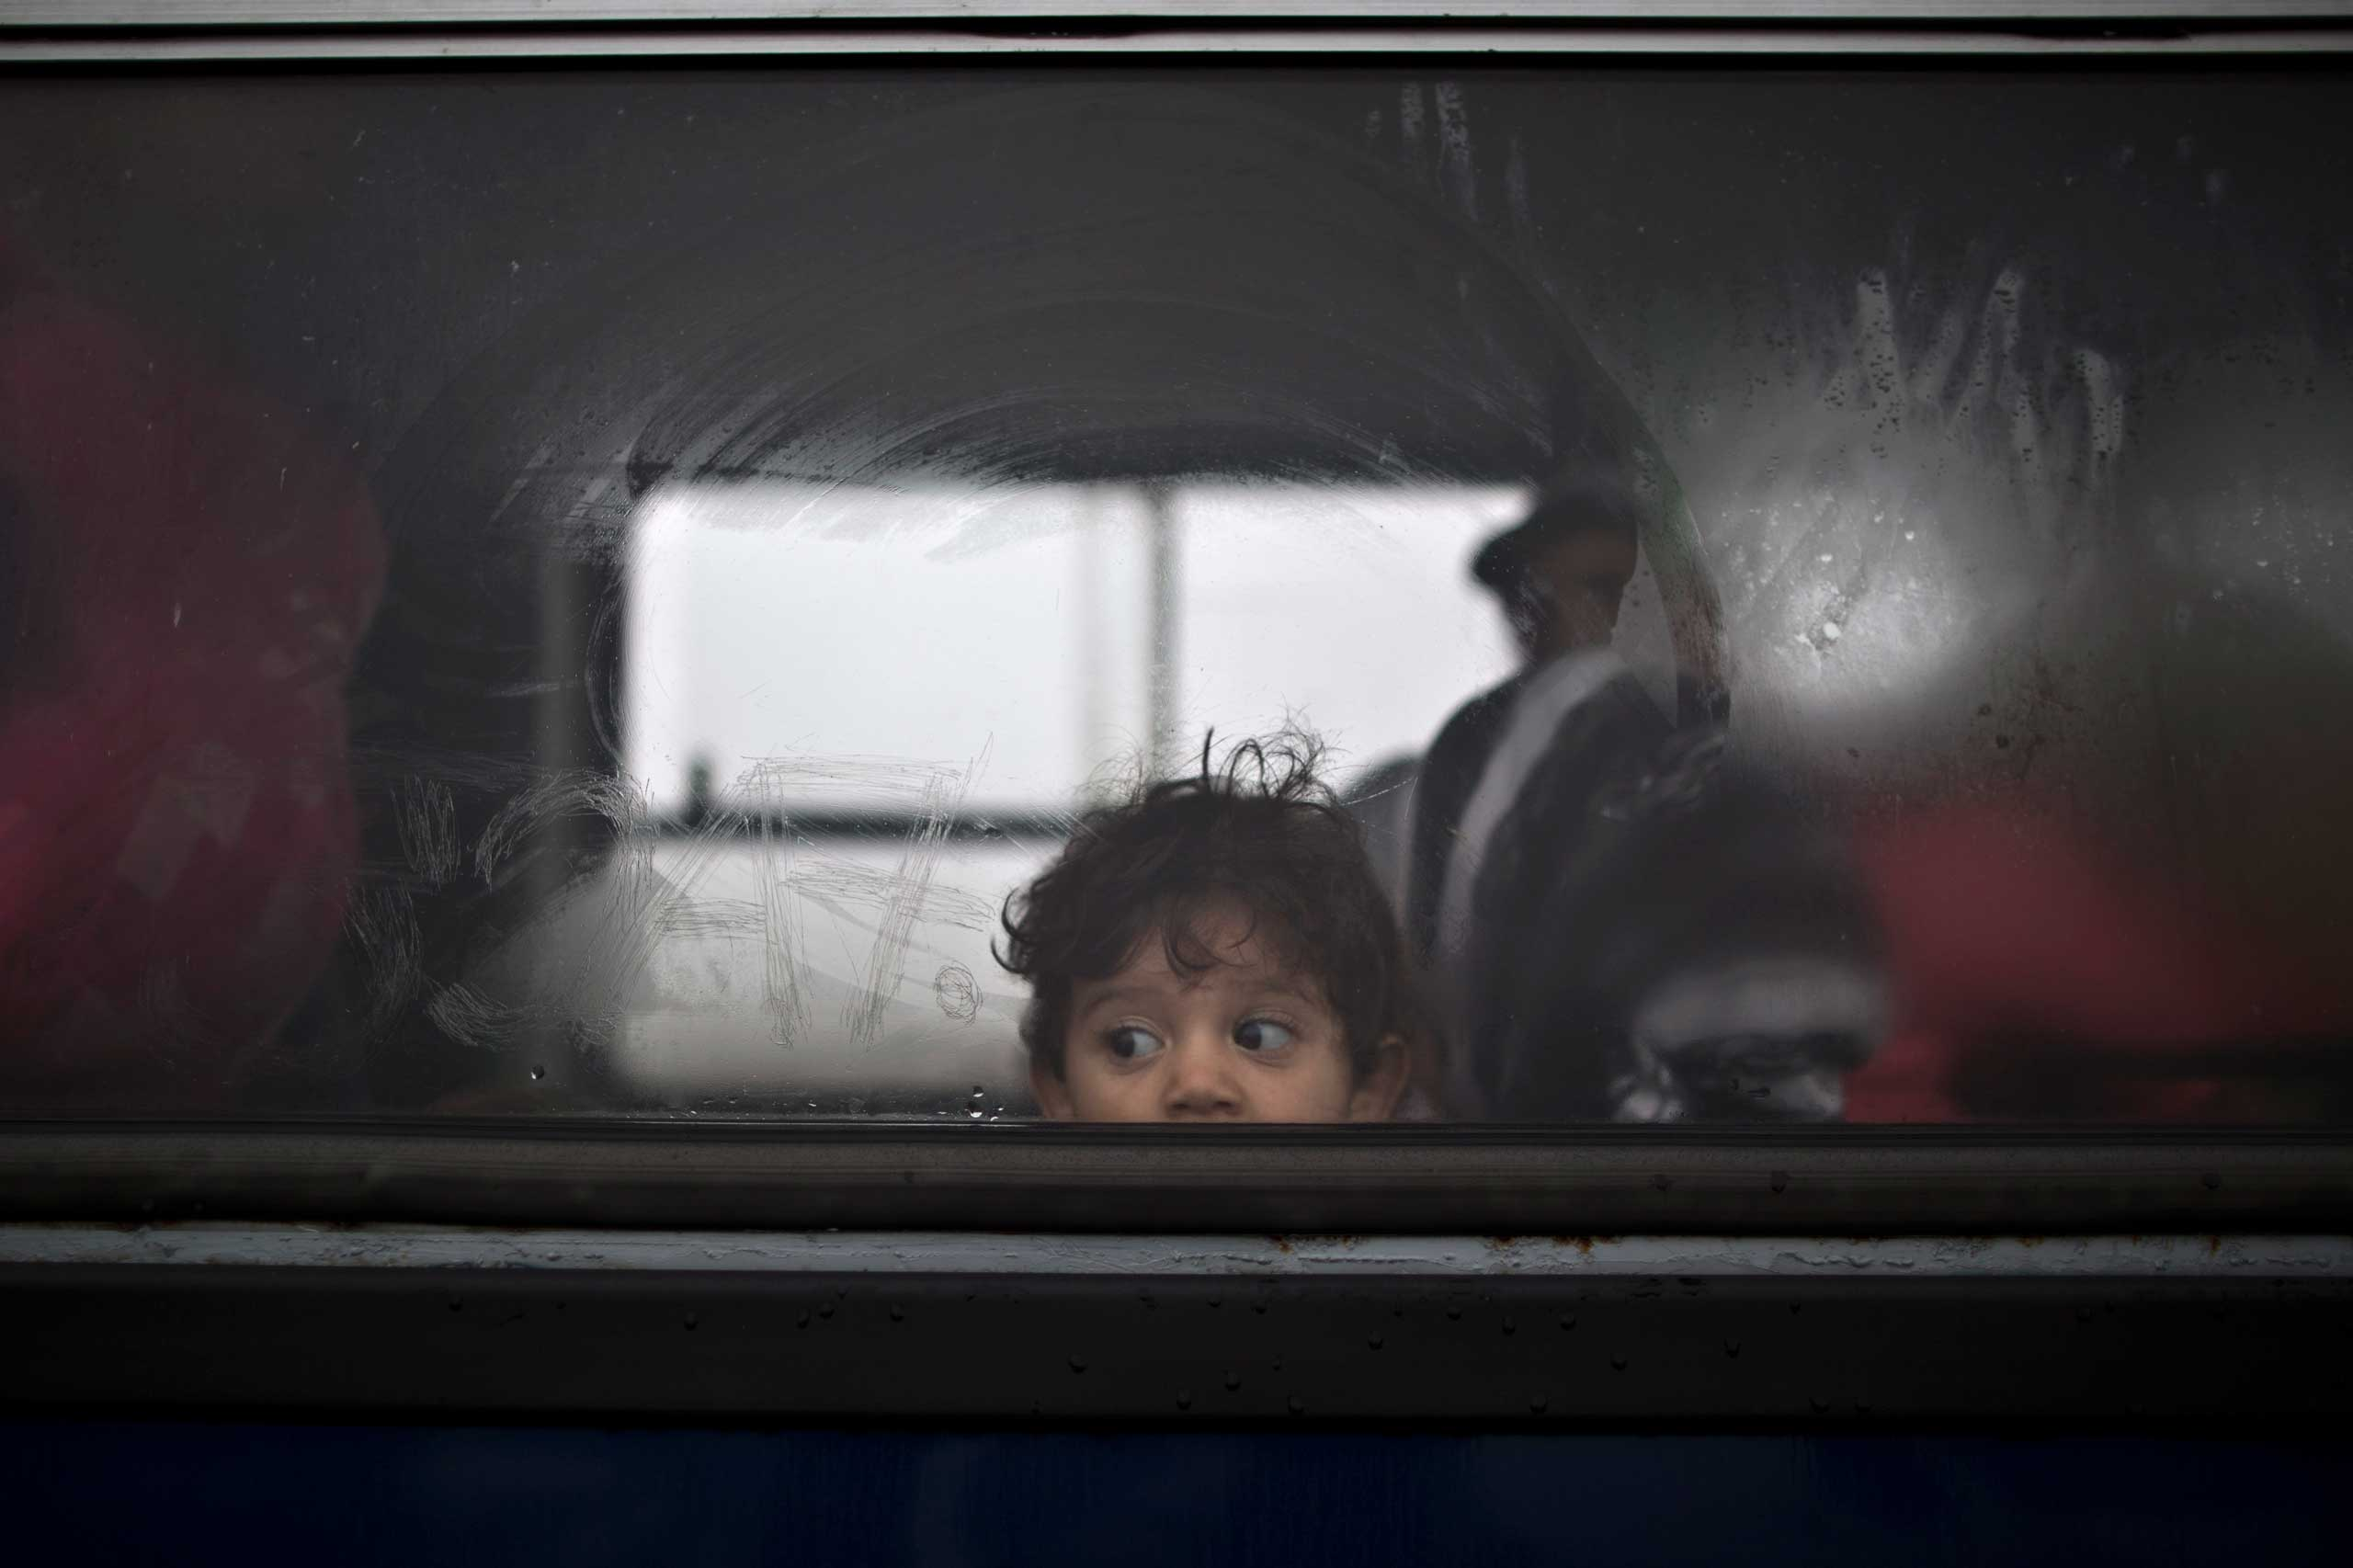 A Syrian refugee child looks out of a bus that will take him and his family to the center for asylum seekers near Roszke, on Sept. 11, 2015.